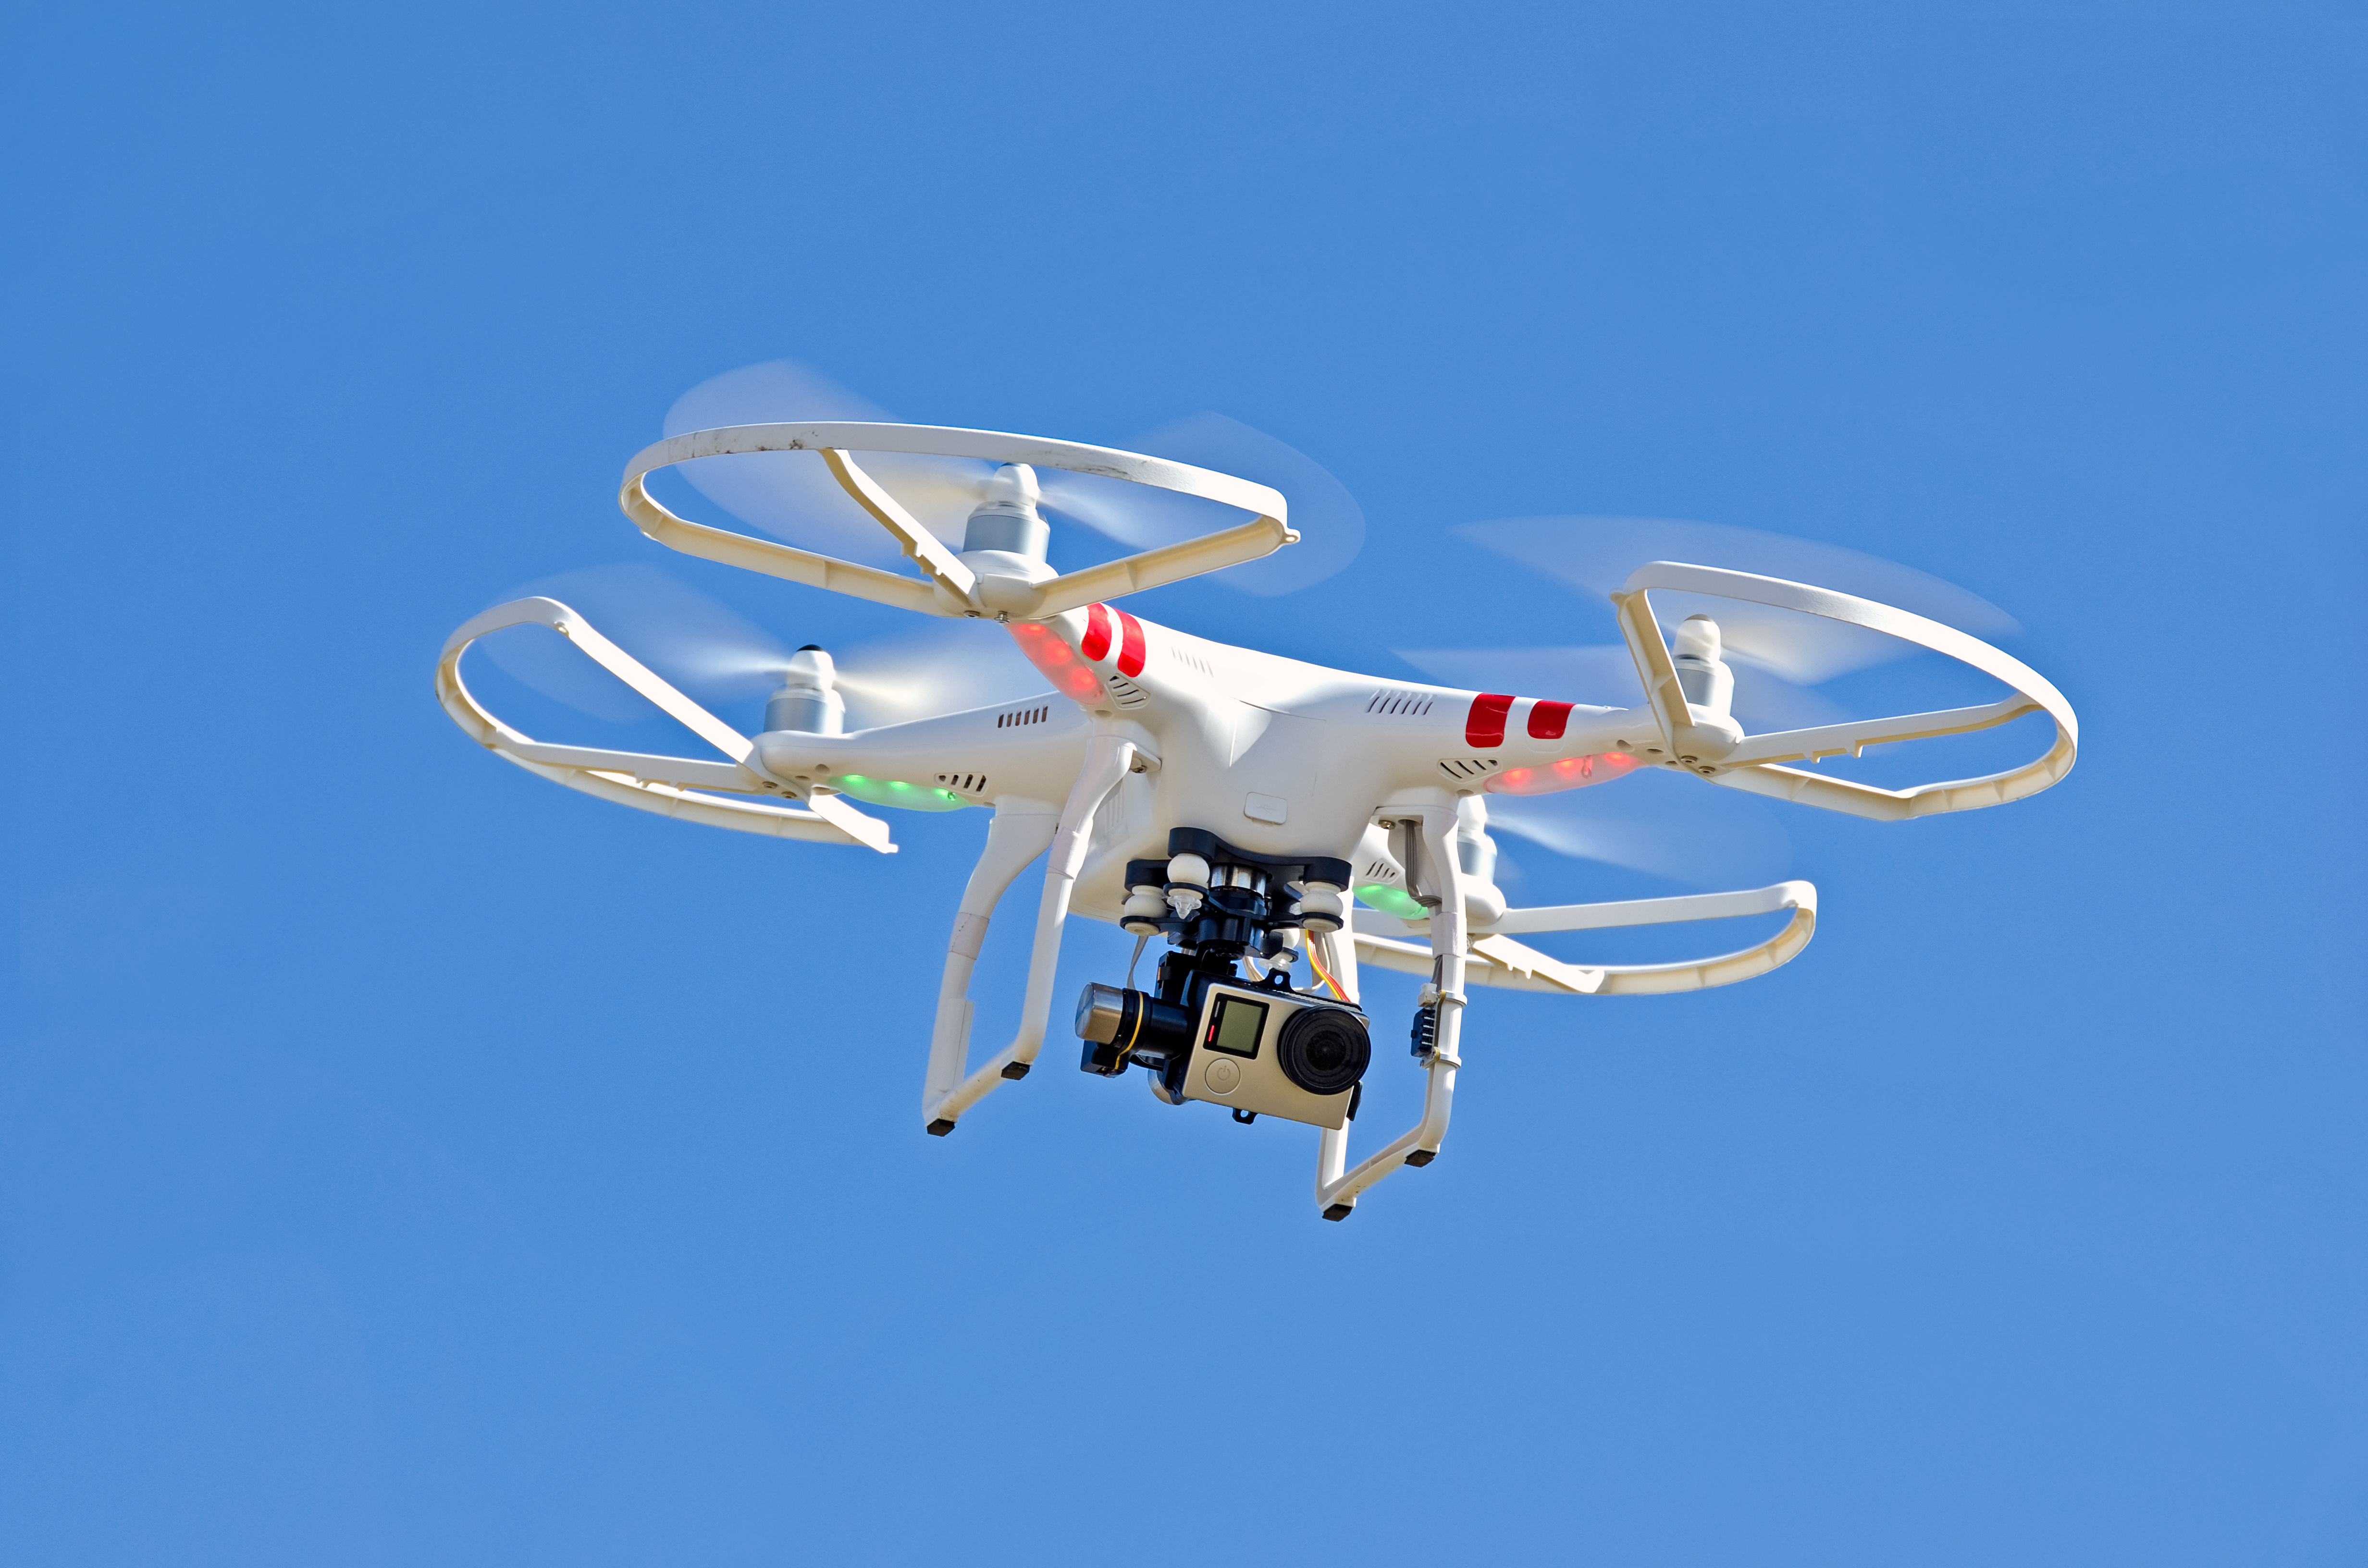 Check out the camera on the bottom of that quadcopter. Photo courtesy of DollarPhotoClub.com